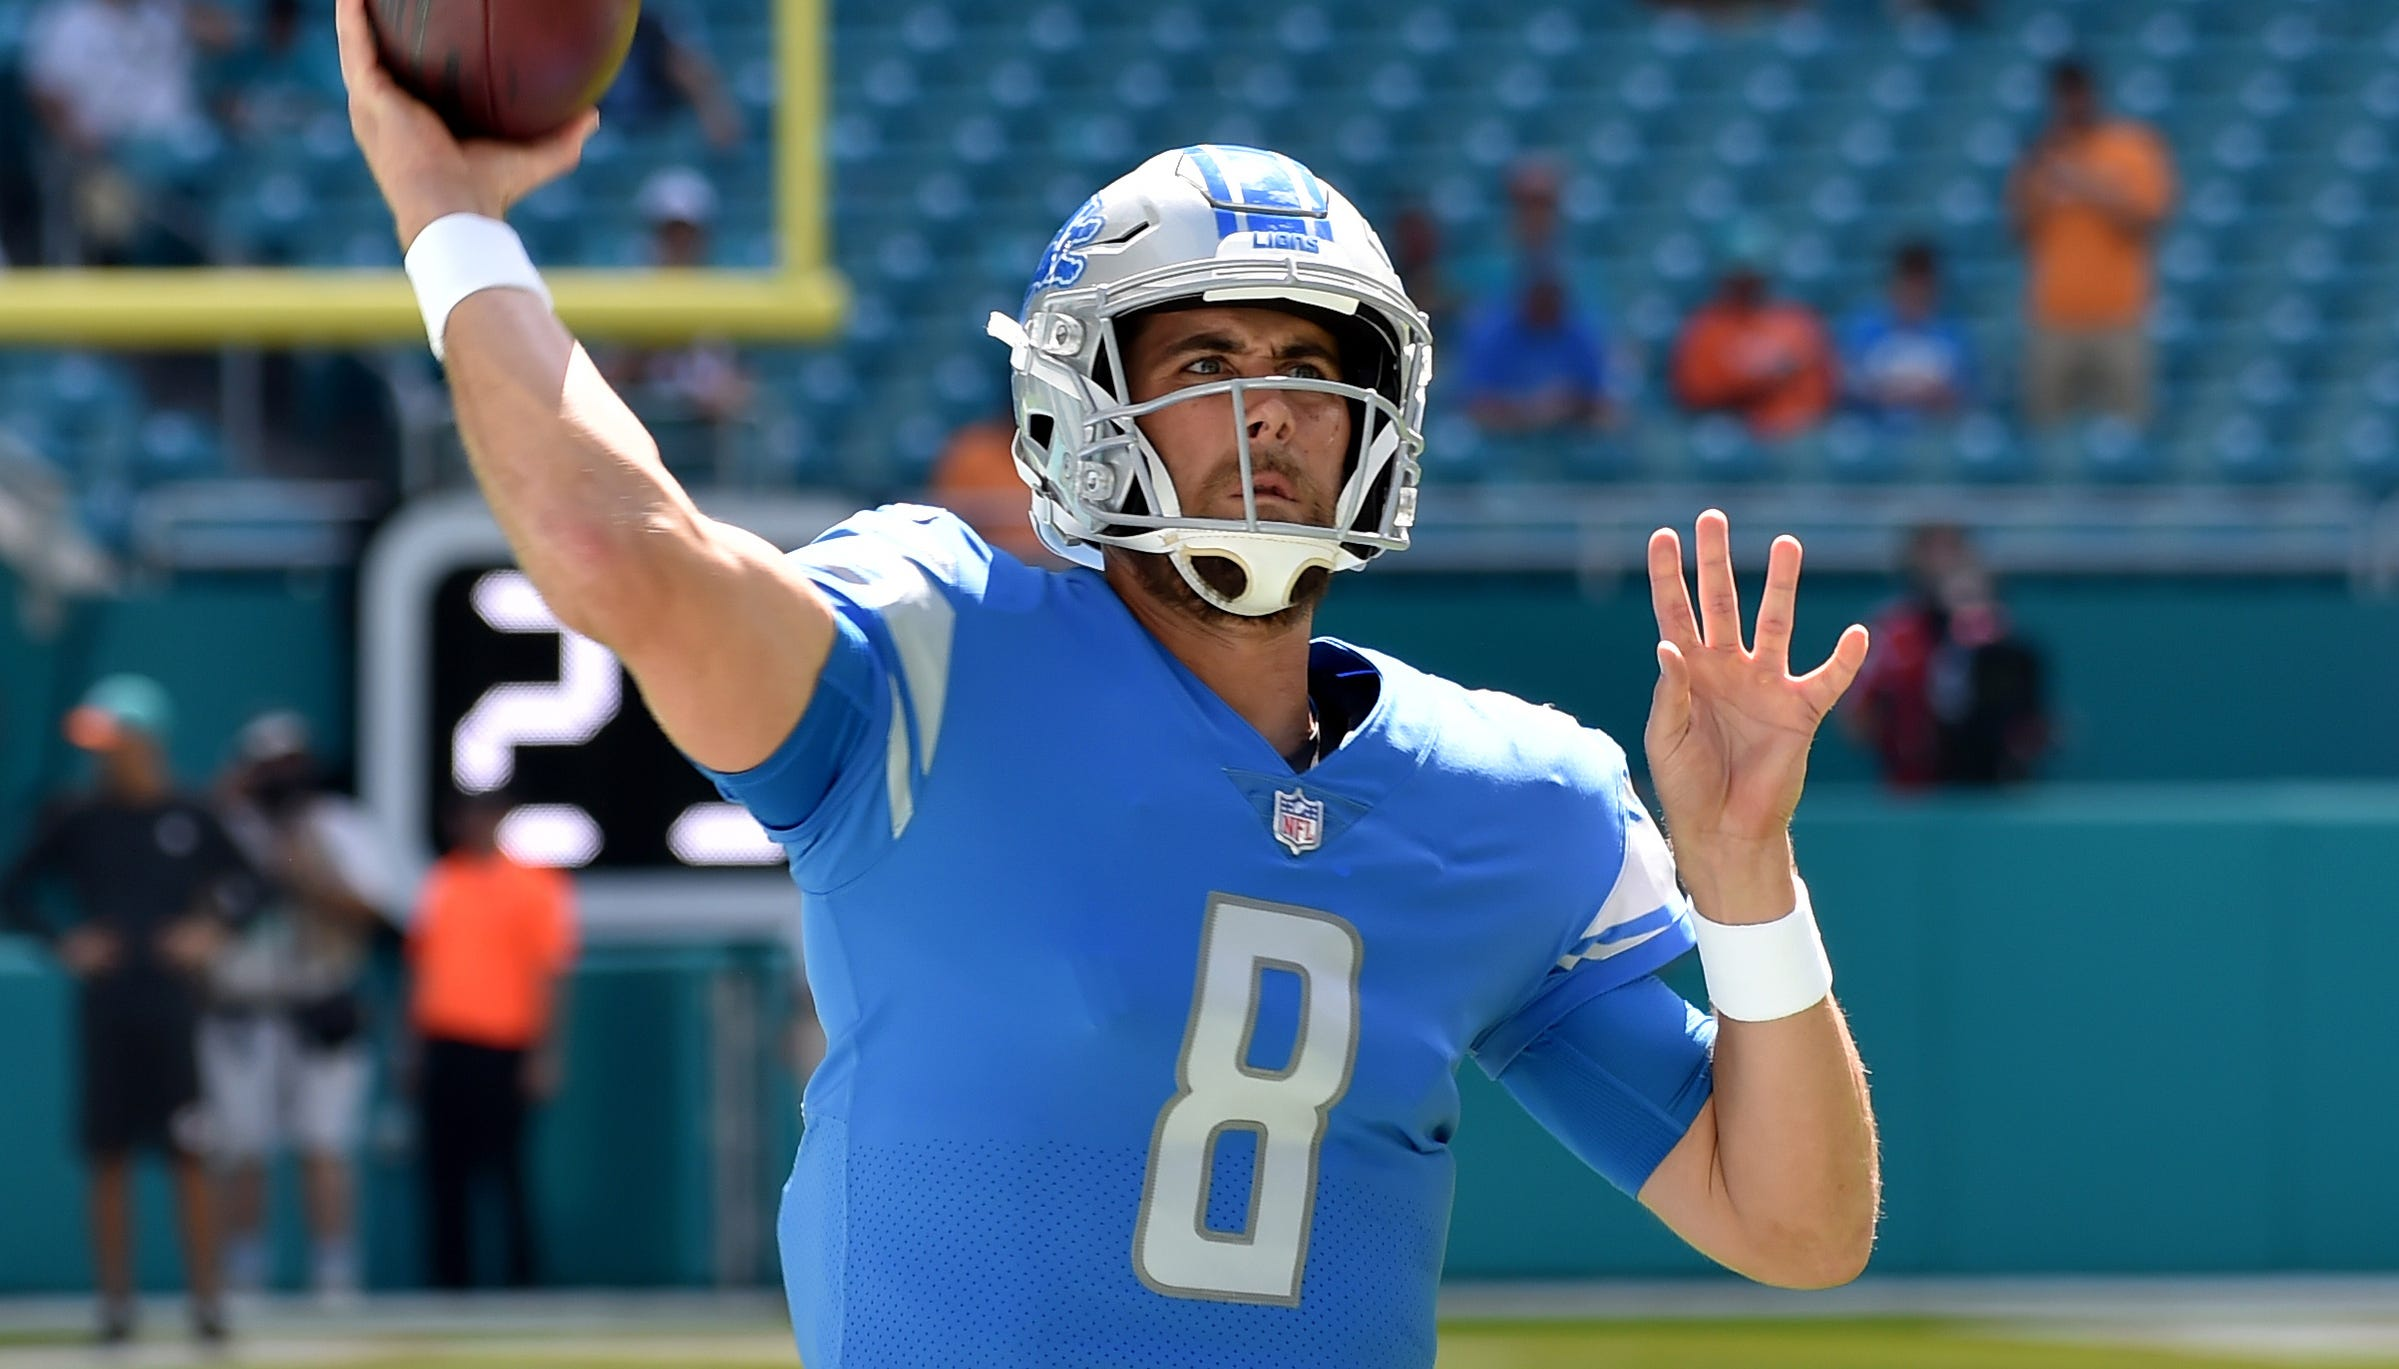 Detroit Lions need a backup QB. Matthew Stafford's contract makes it hard - Detroit Free Press